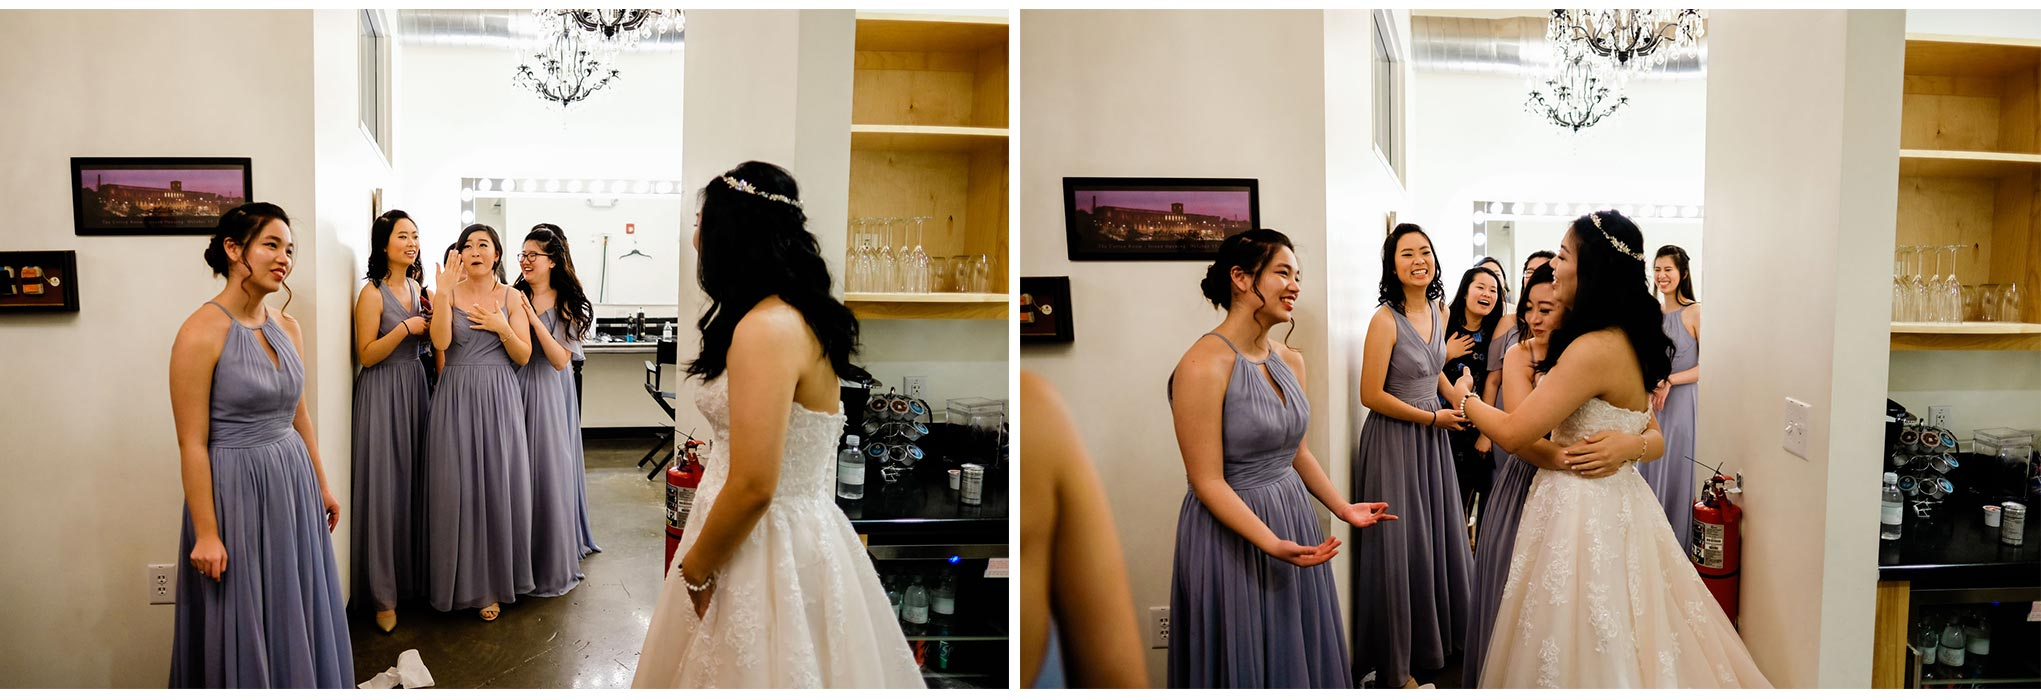 Bridesmaids hugging bride | Durham Wedding Photographer | By G. Lin Photography